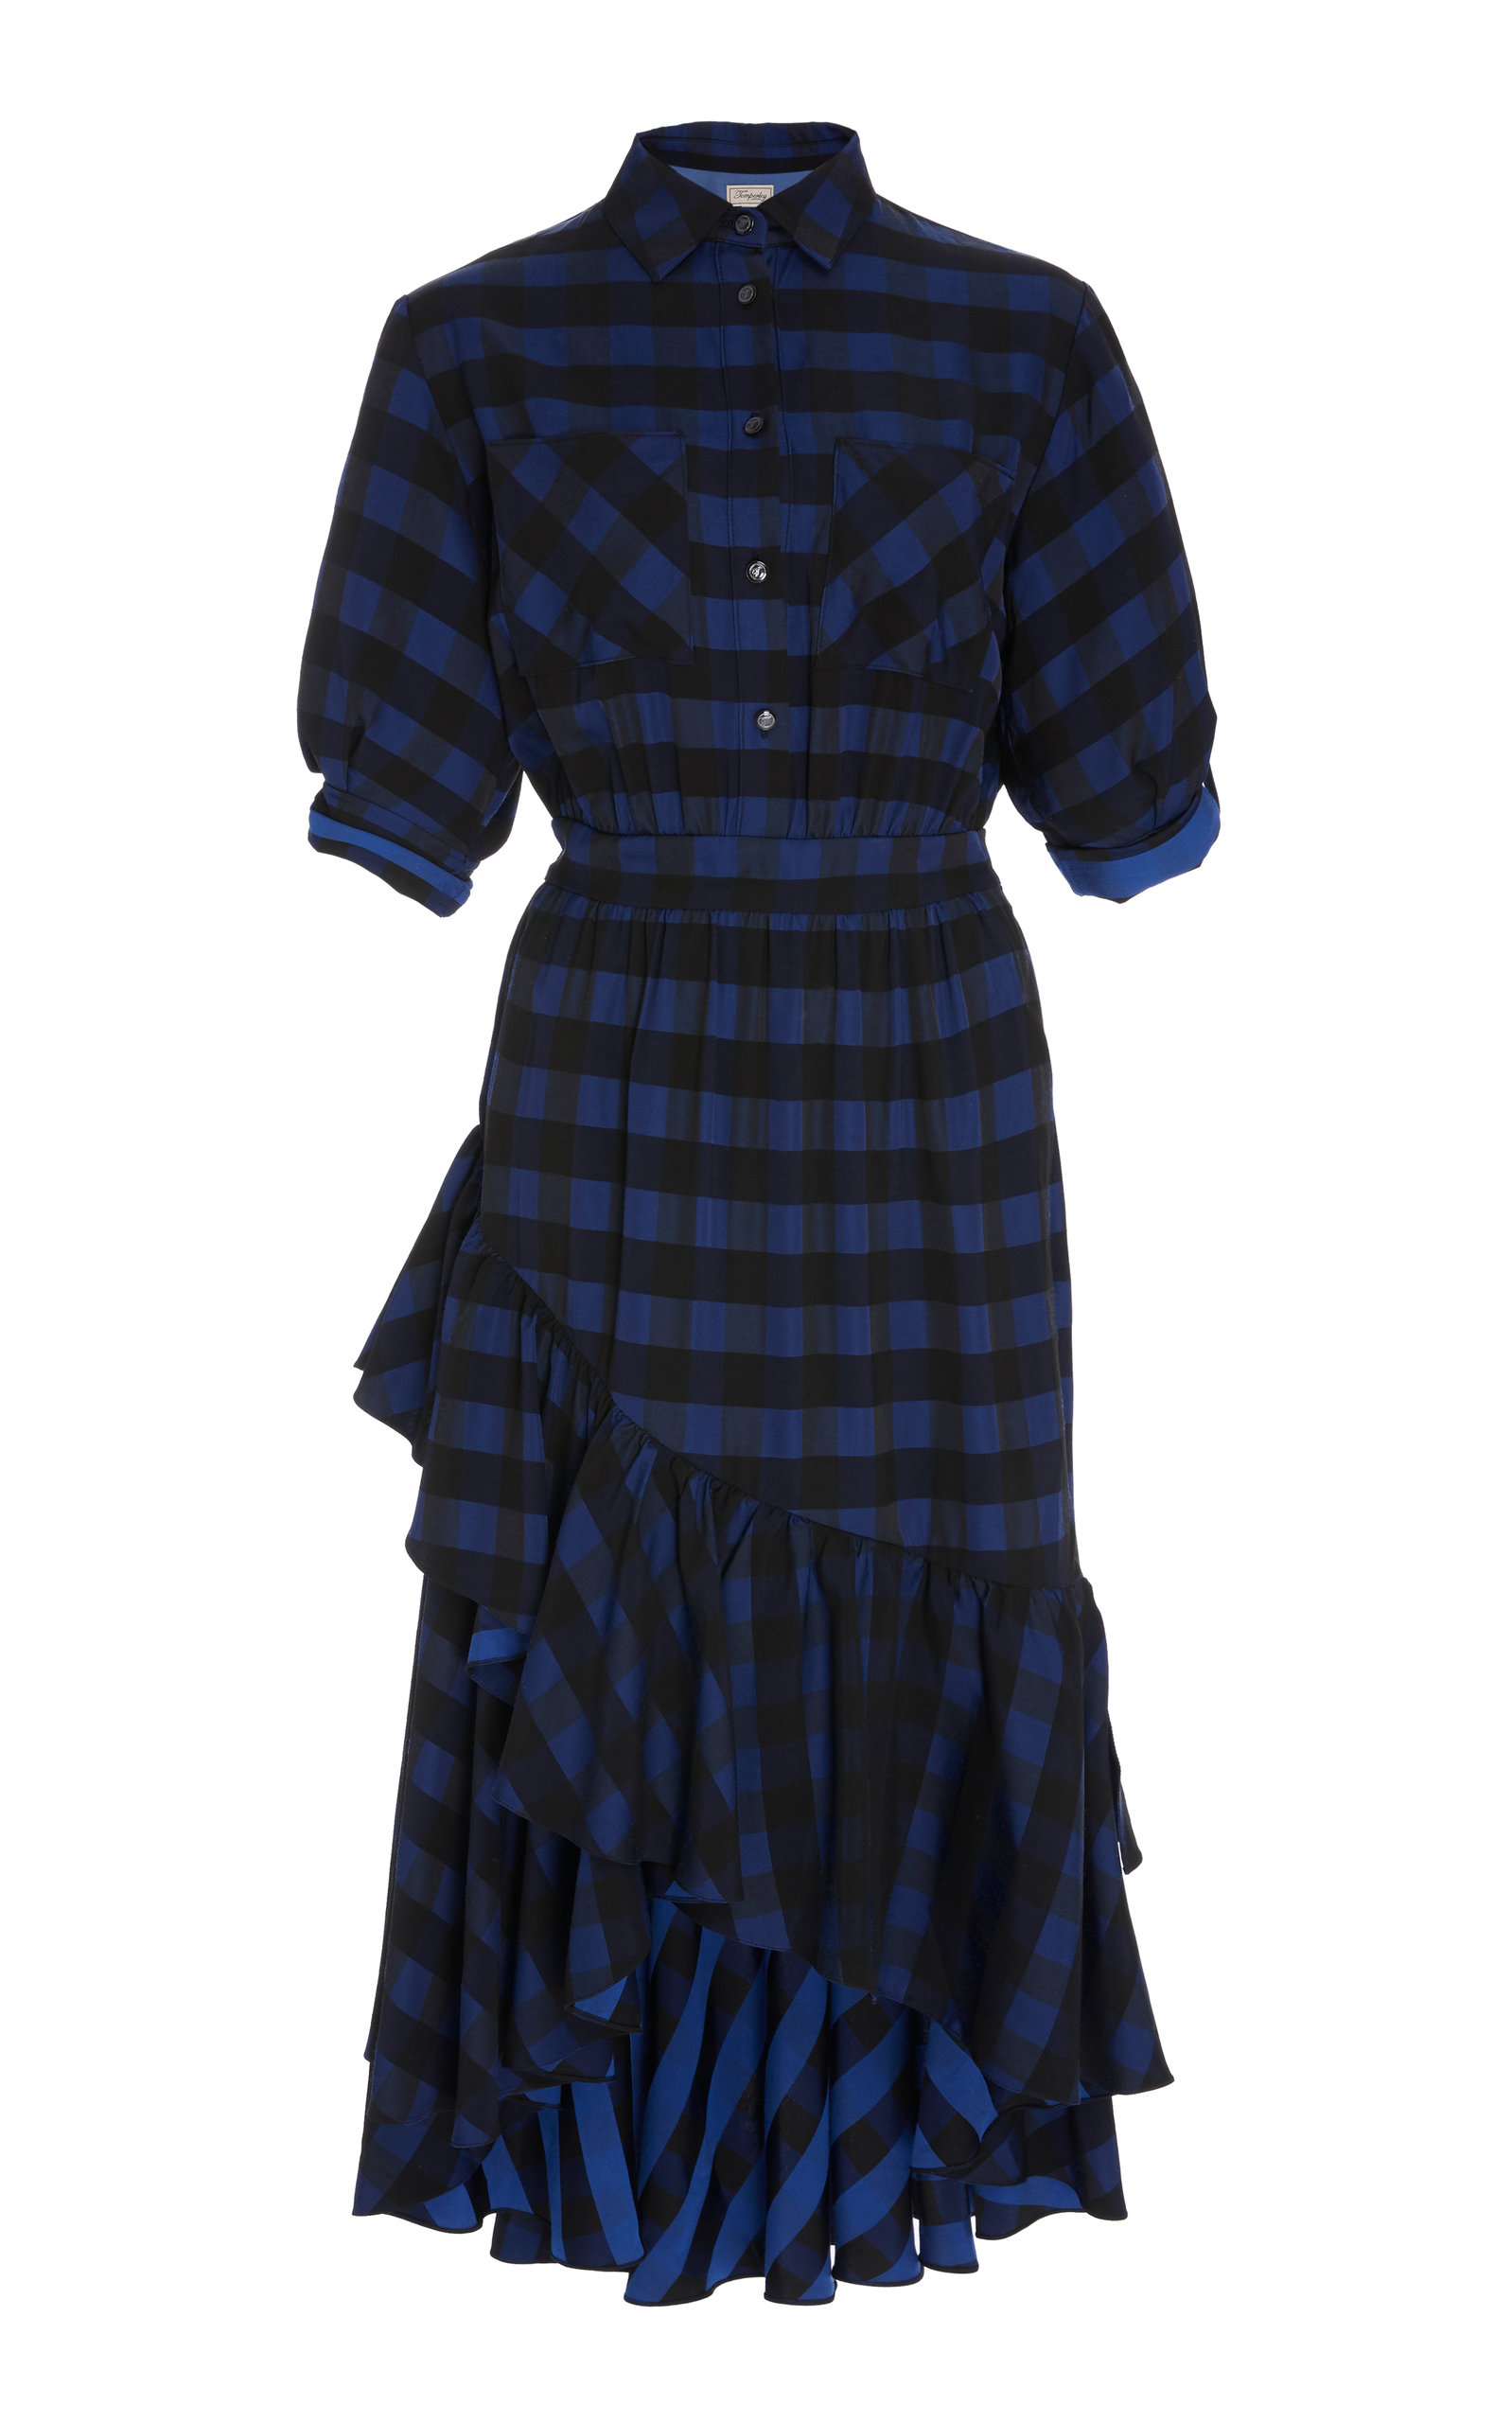 Stirling Plaid Dress Temperley London Limit Discount OuFGA